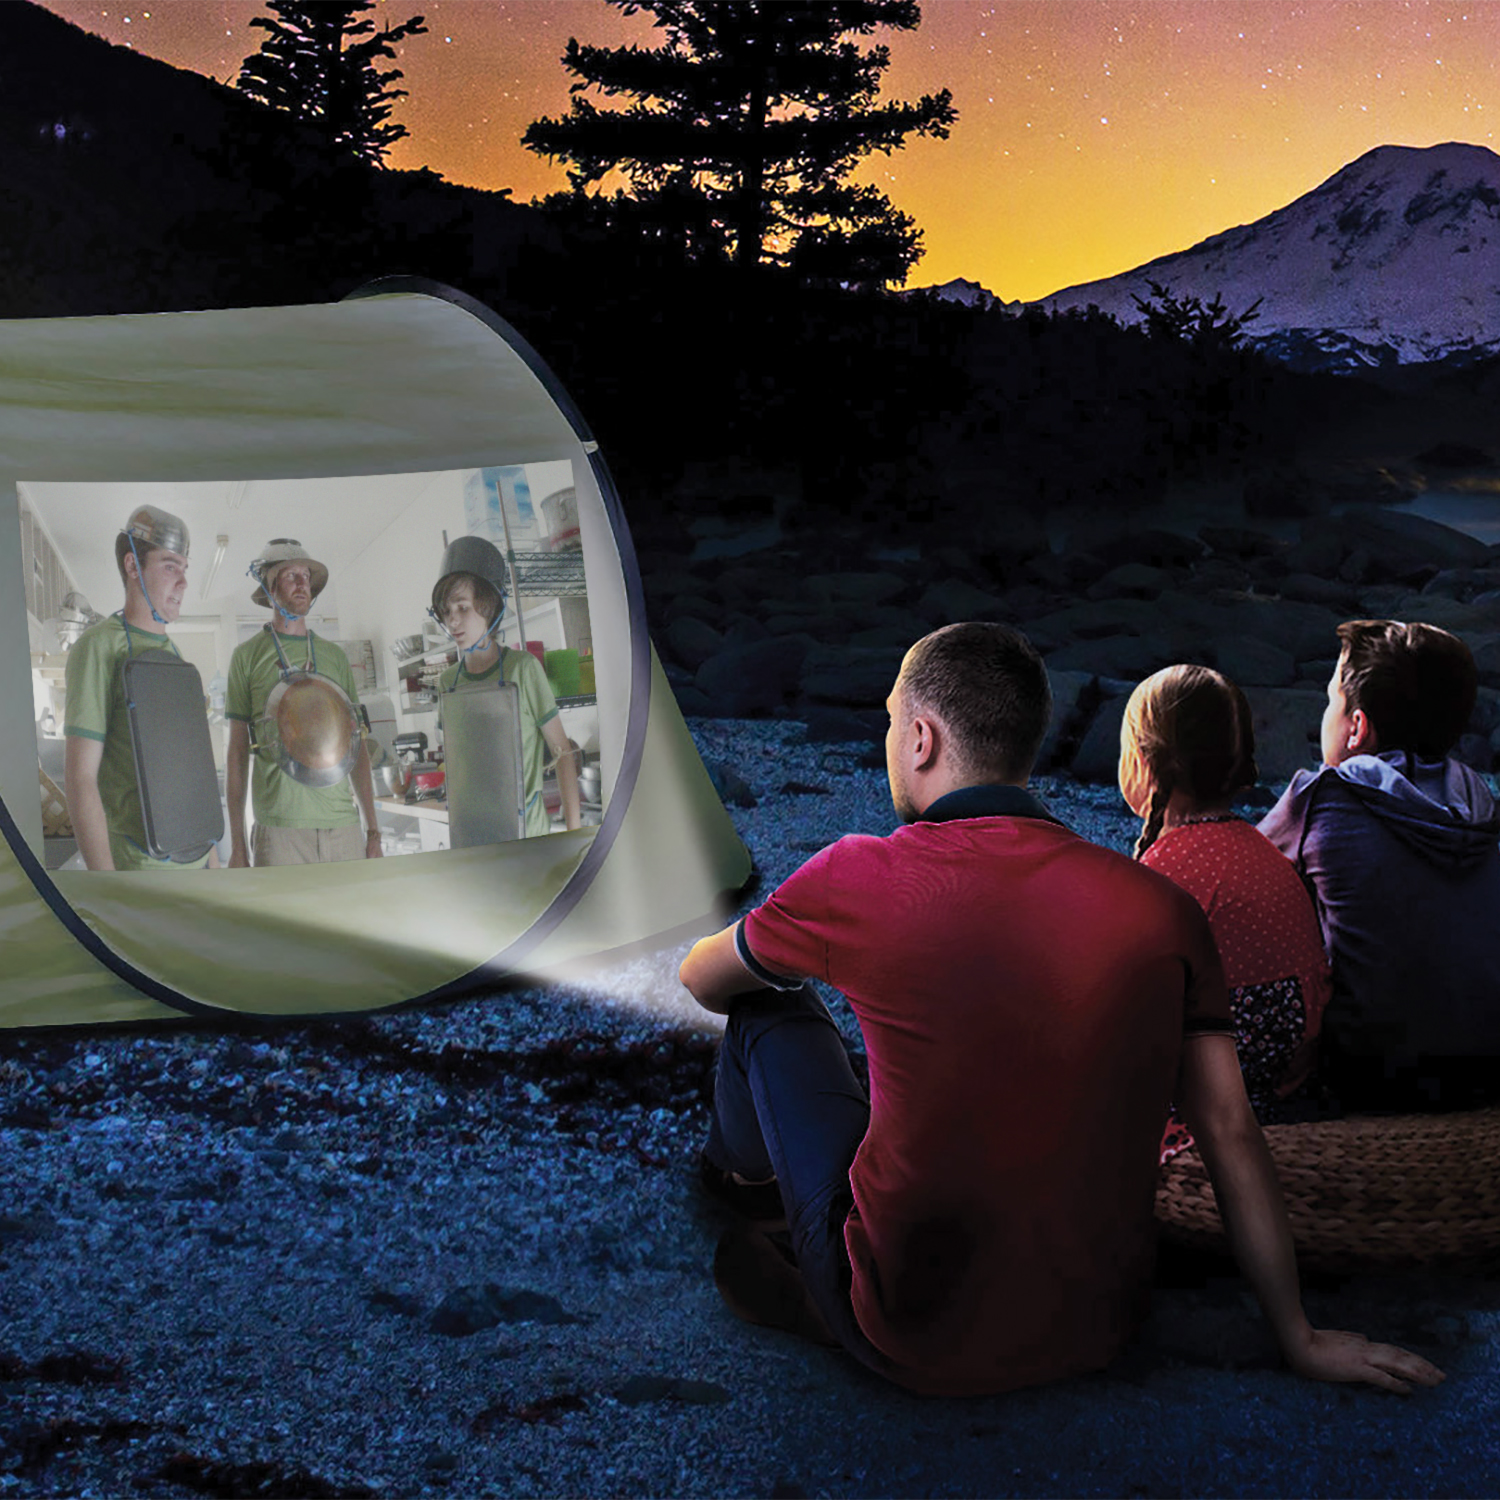 The CINEMOOD Projector lets anywhere become a virtual theater!